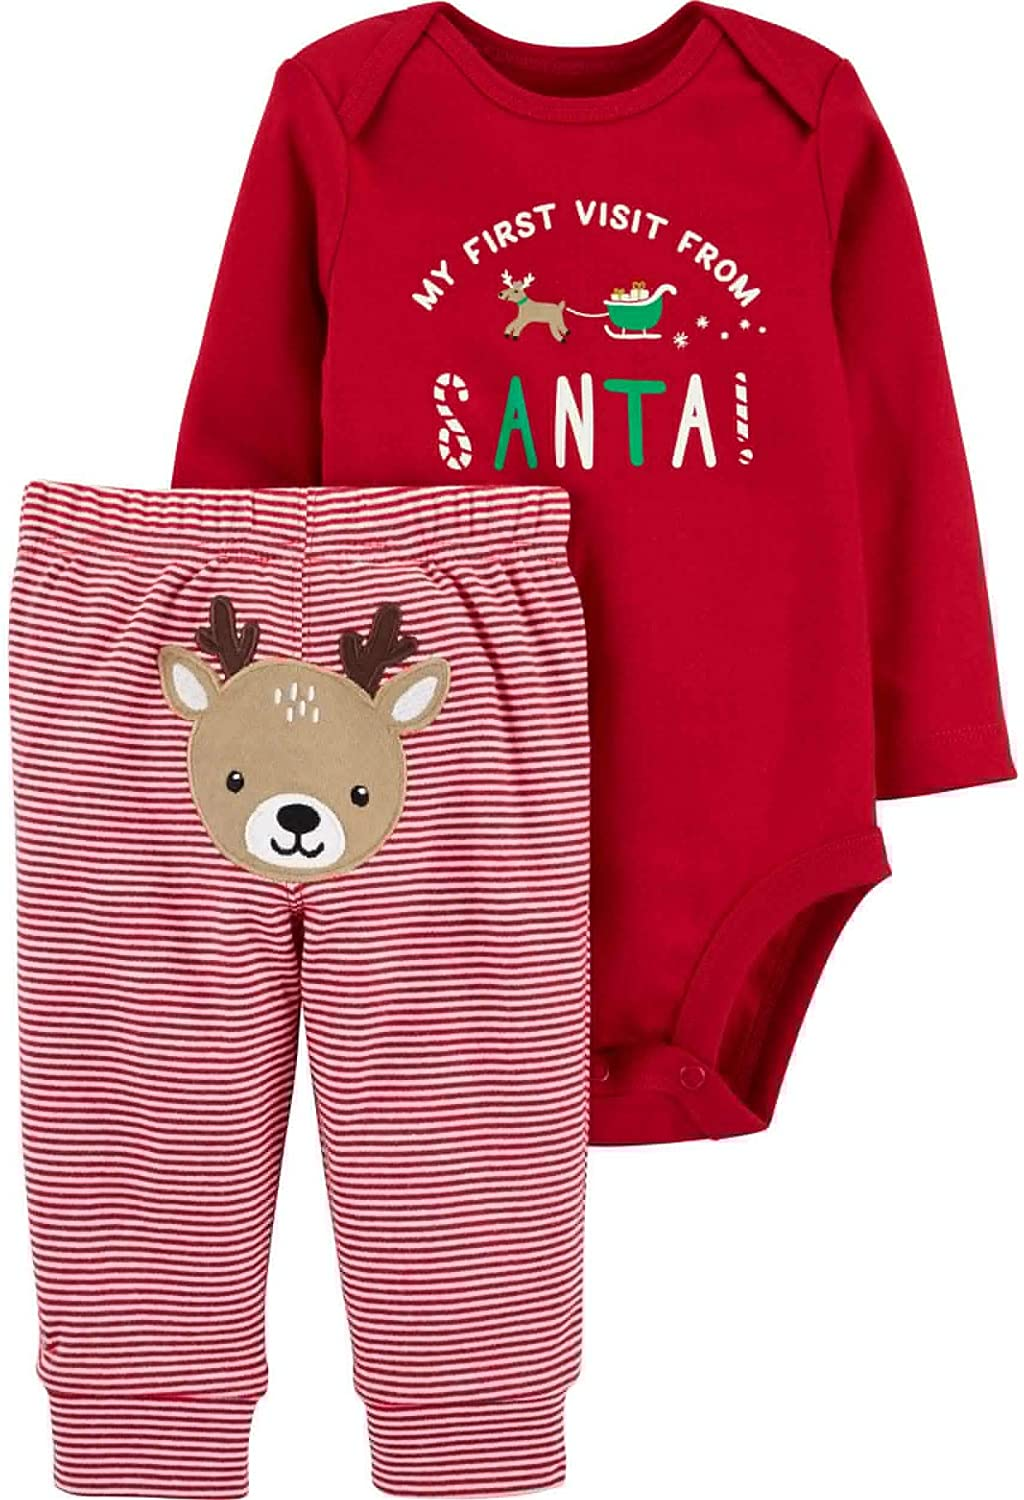 Carter's New Winter Holiday Preemie 2-Piece Christmas My First Visit from Santa Bodysuit and Striped Pants with Embroidered Reindeer Set